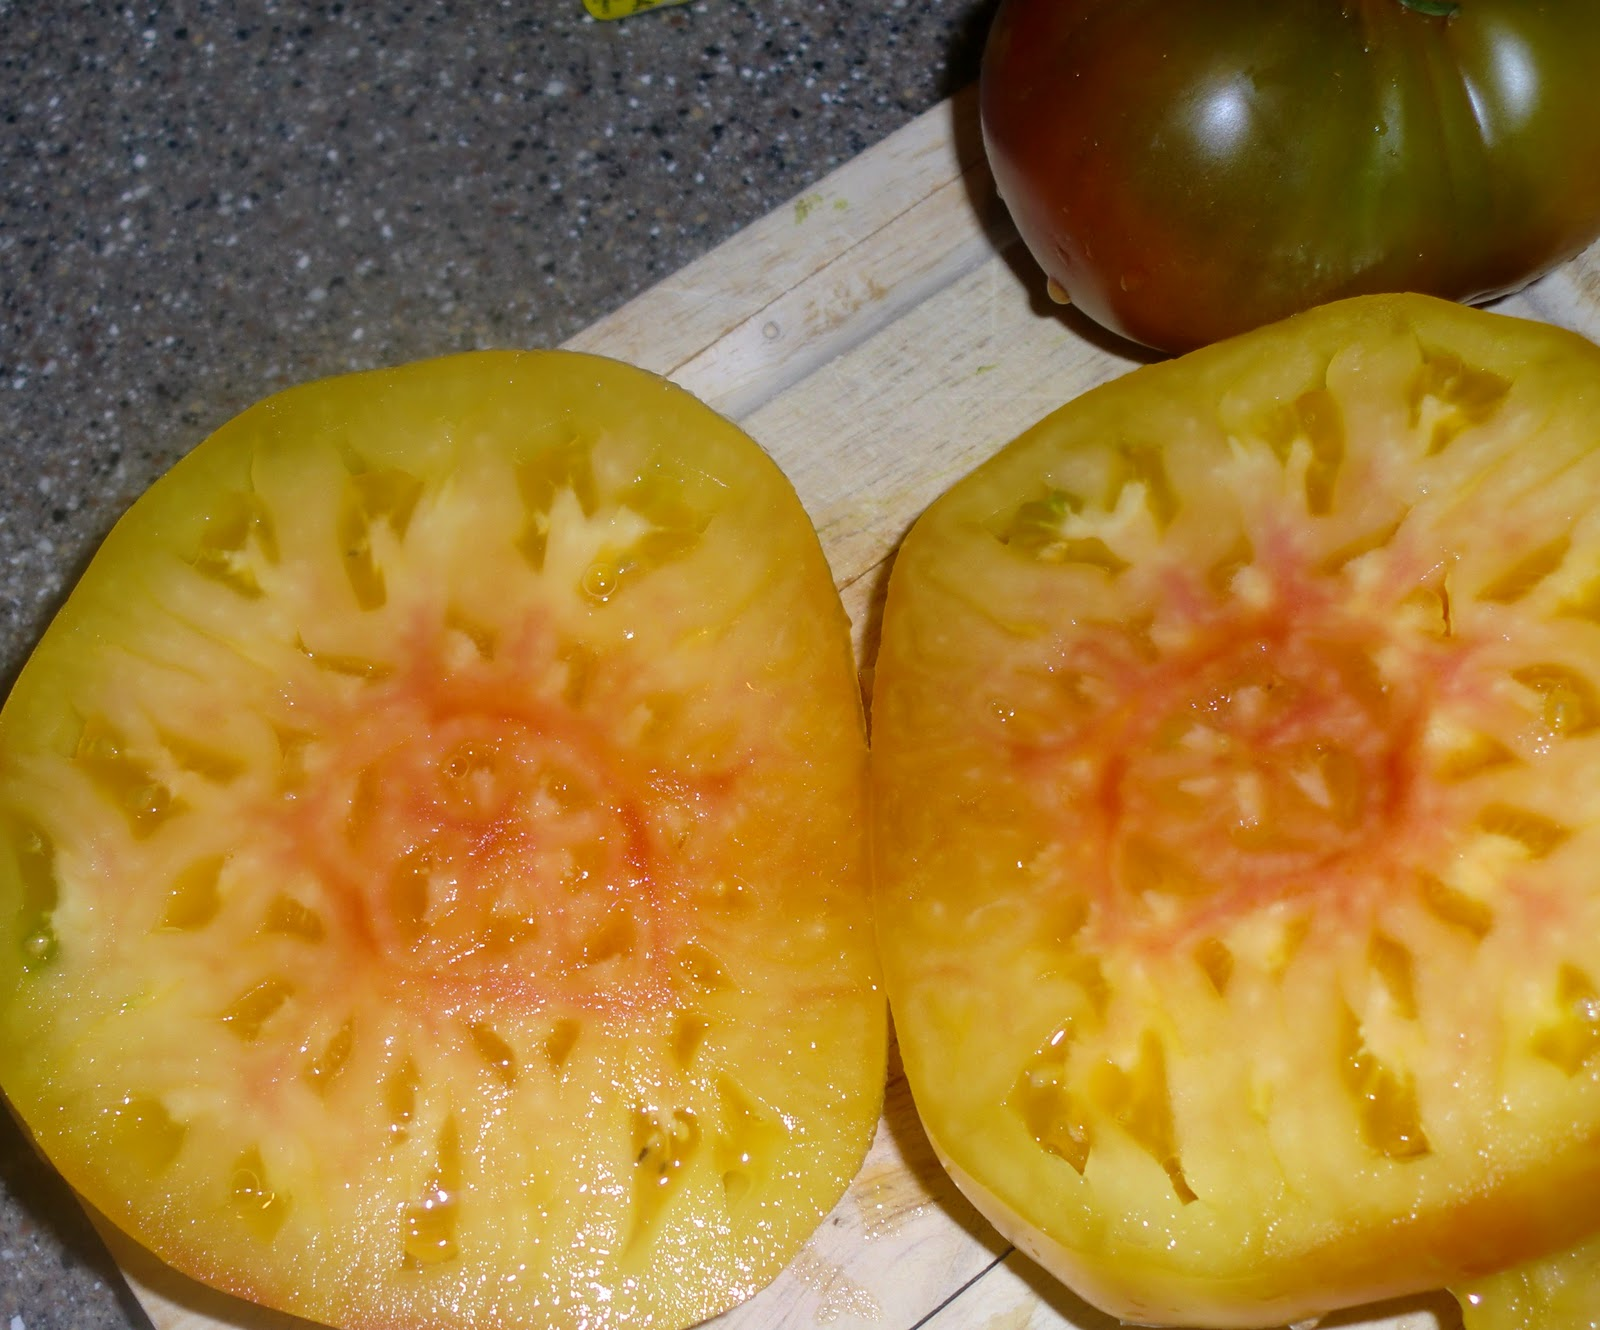 ... Monday Recipe: Roasted Heirloom Tomatoes w/ Fontina and Thyme